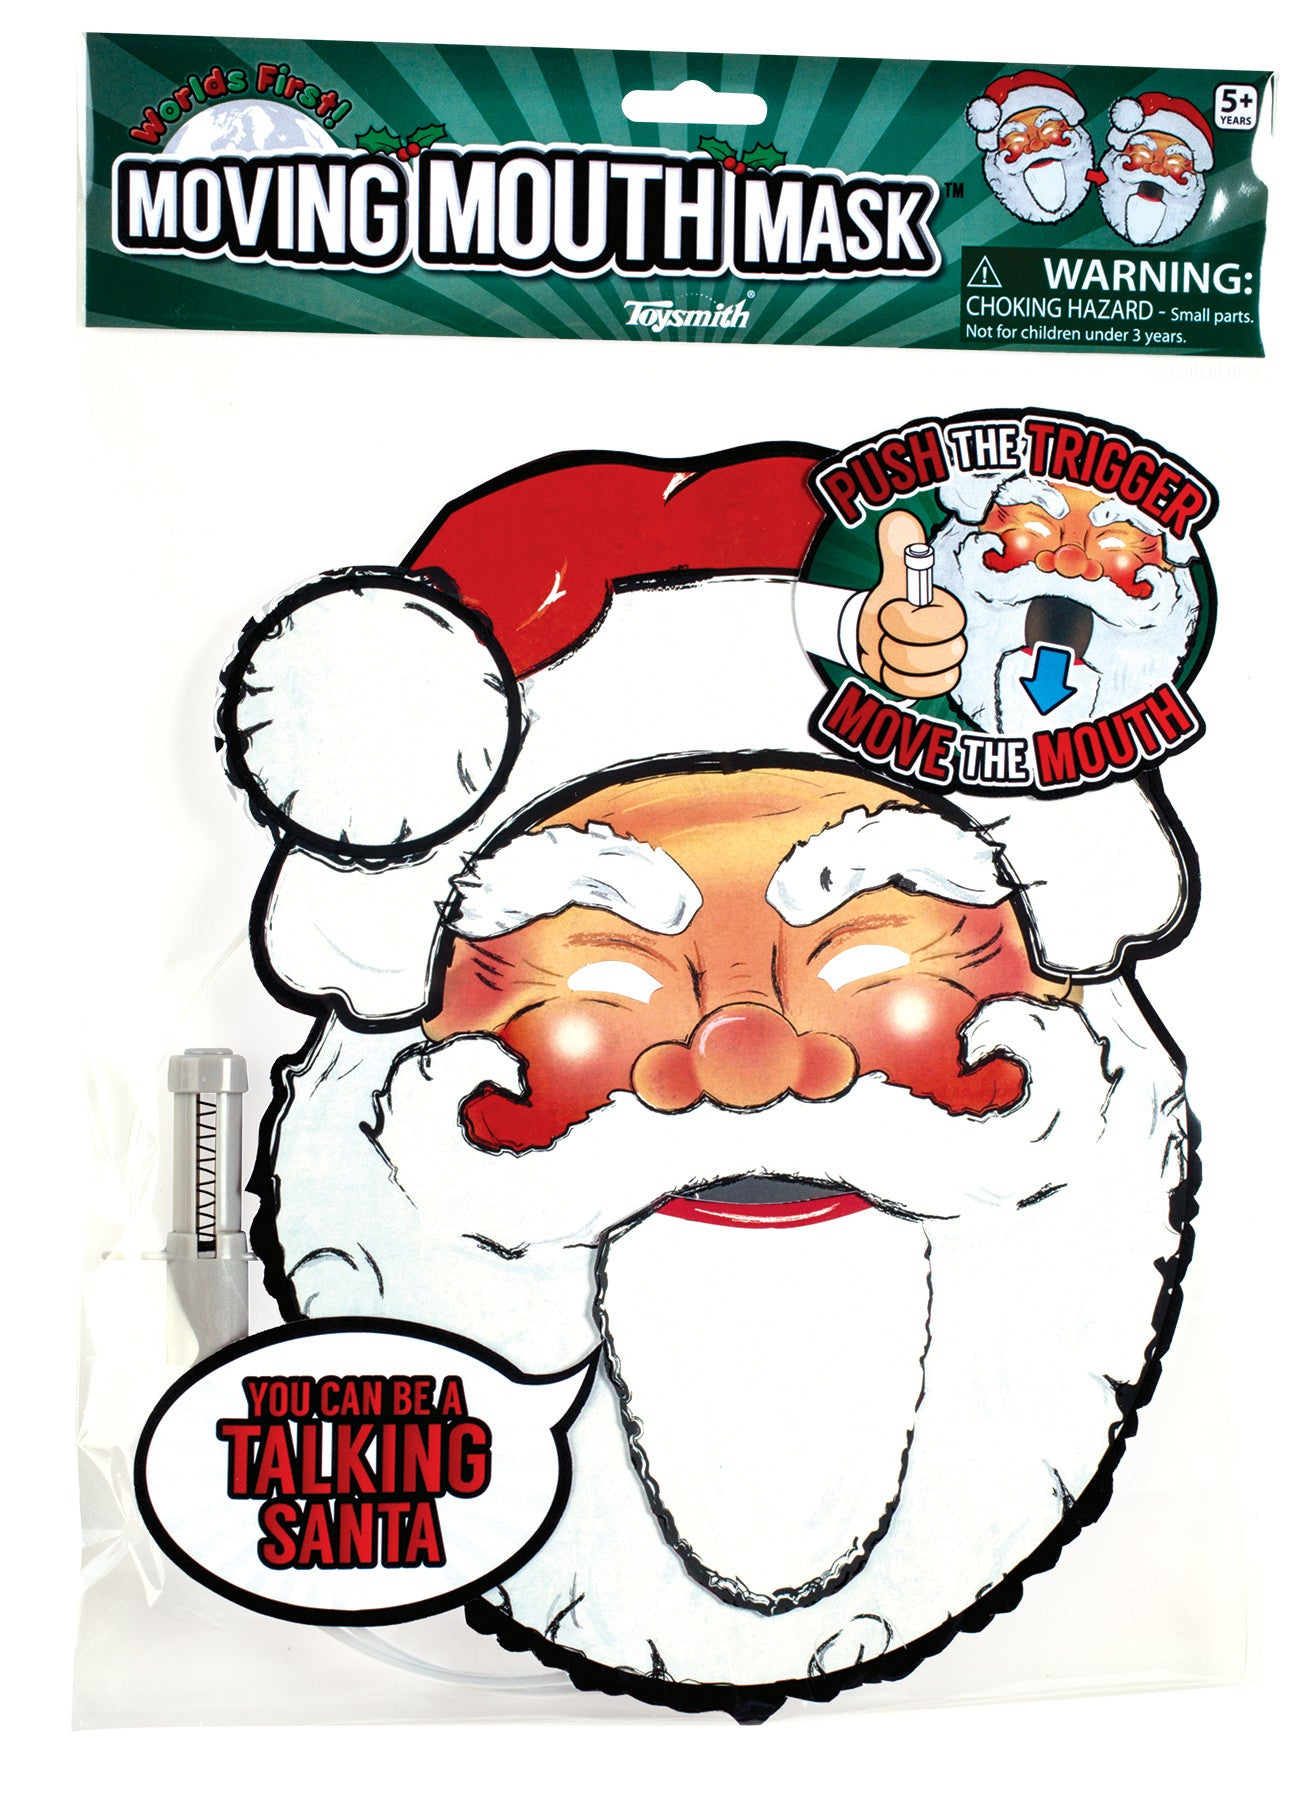 Paper Santa Face Moving Mouth Mask Talking Headz - Off The Wall Toys and Gifts